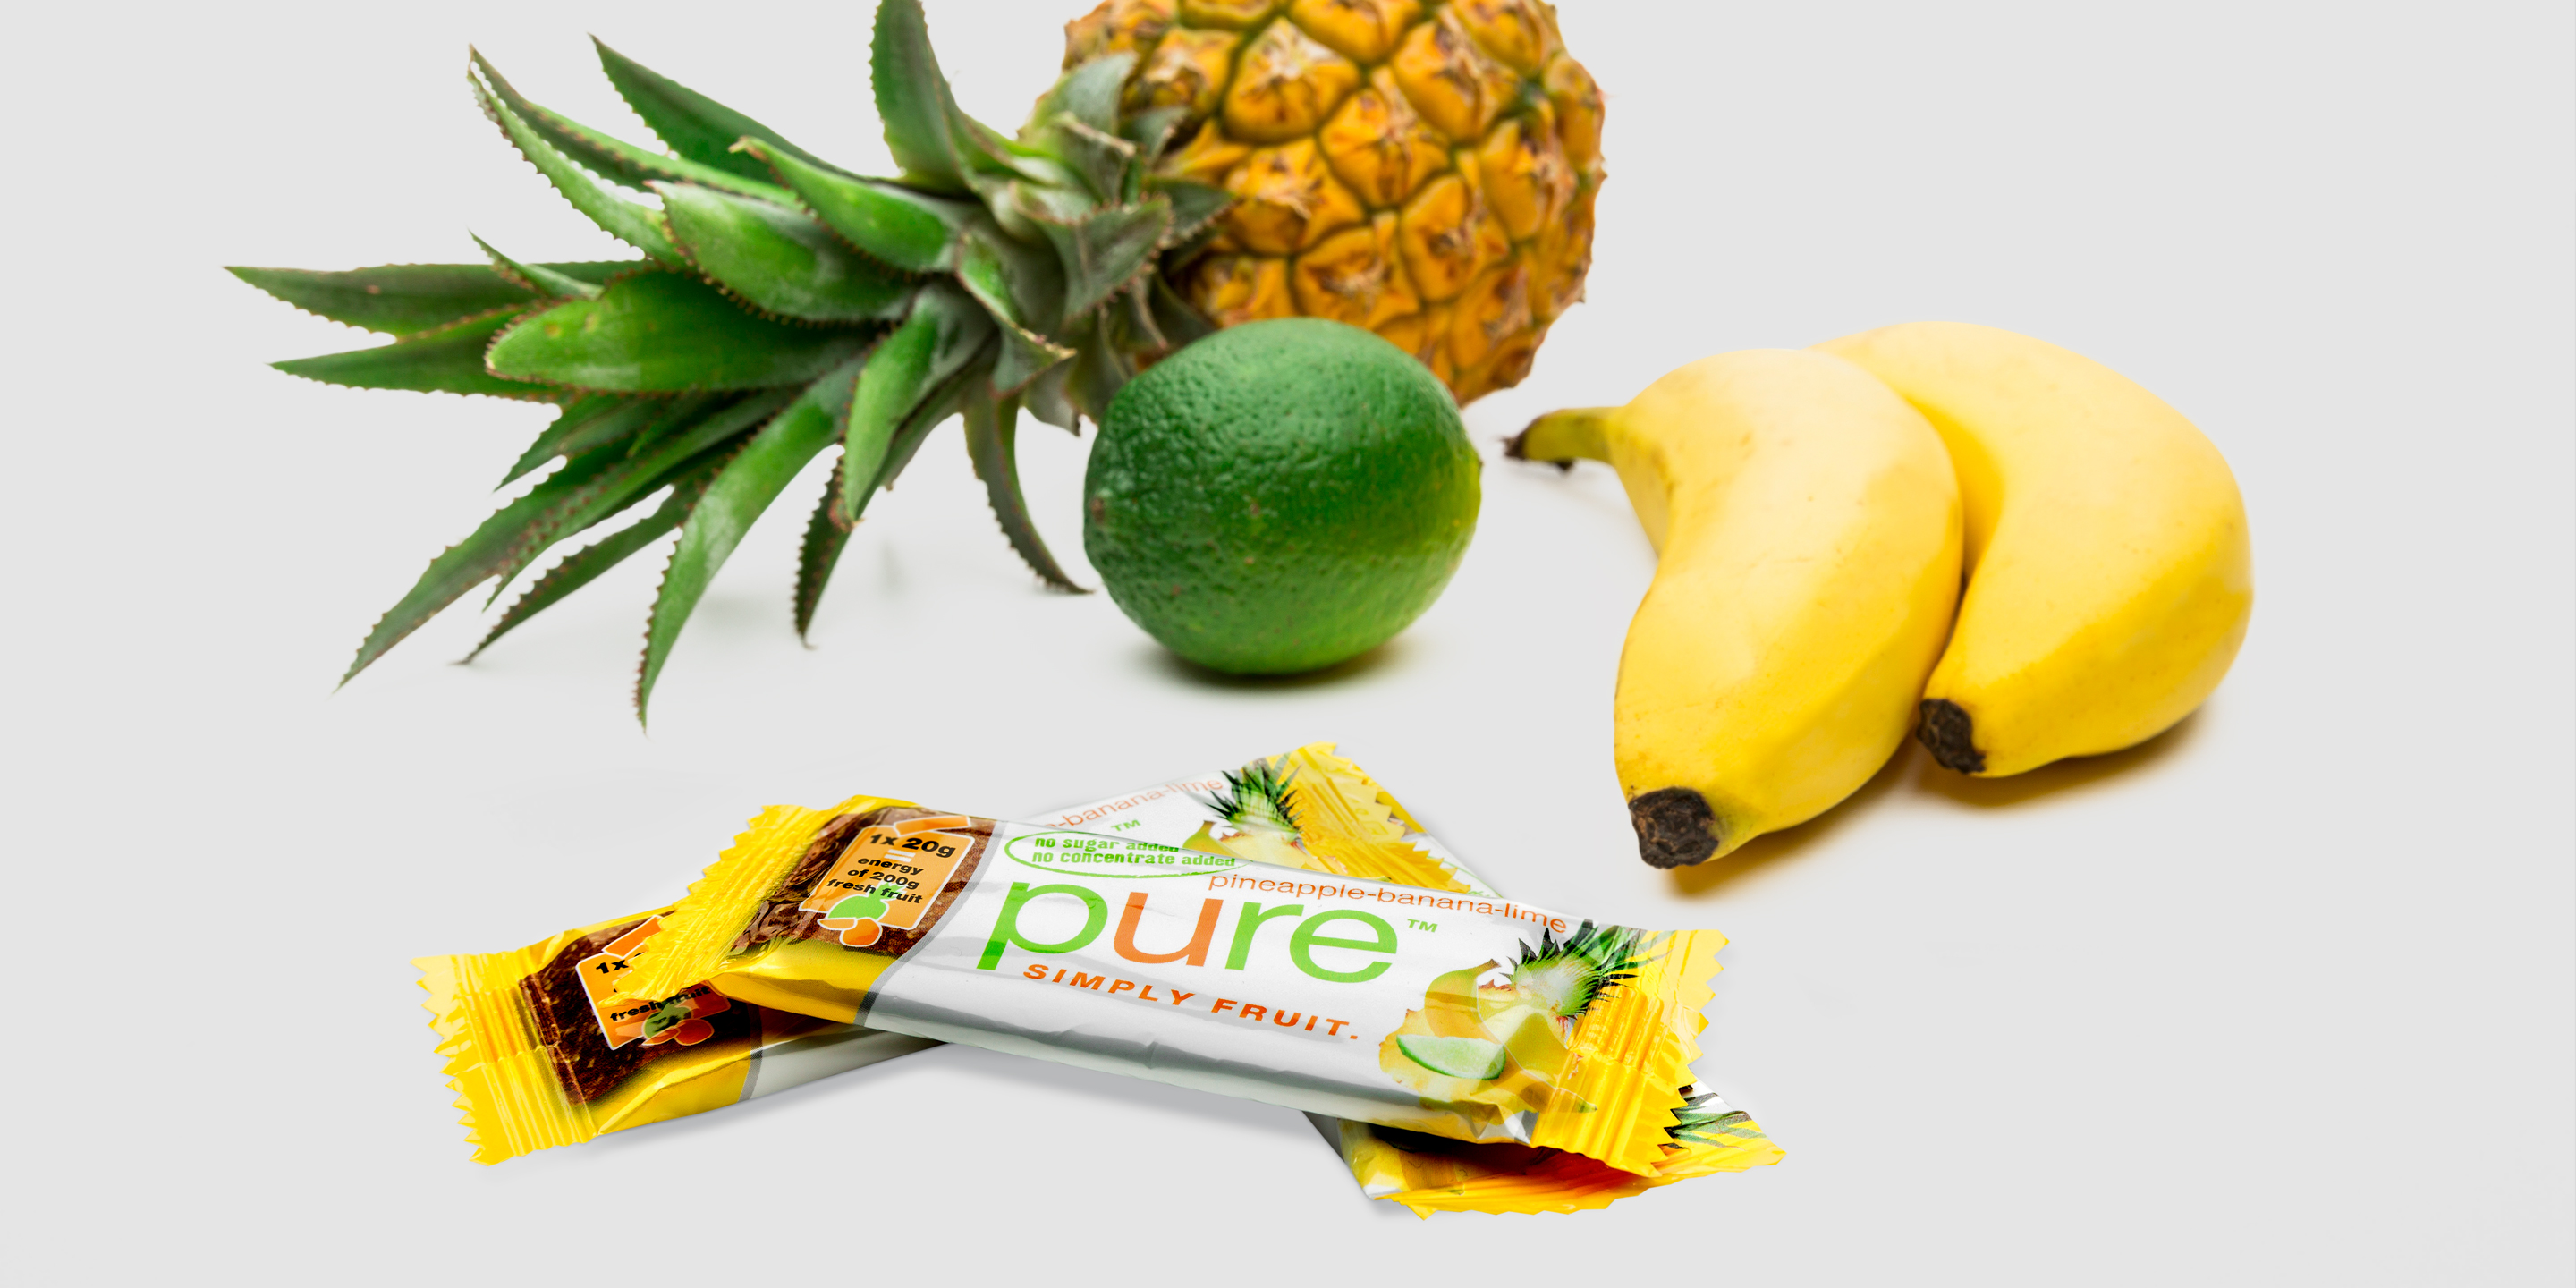 pure™ – simply fruit